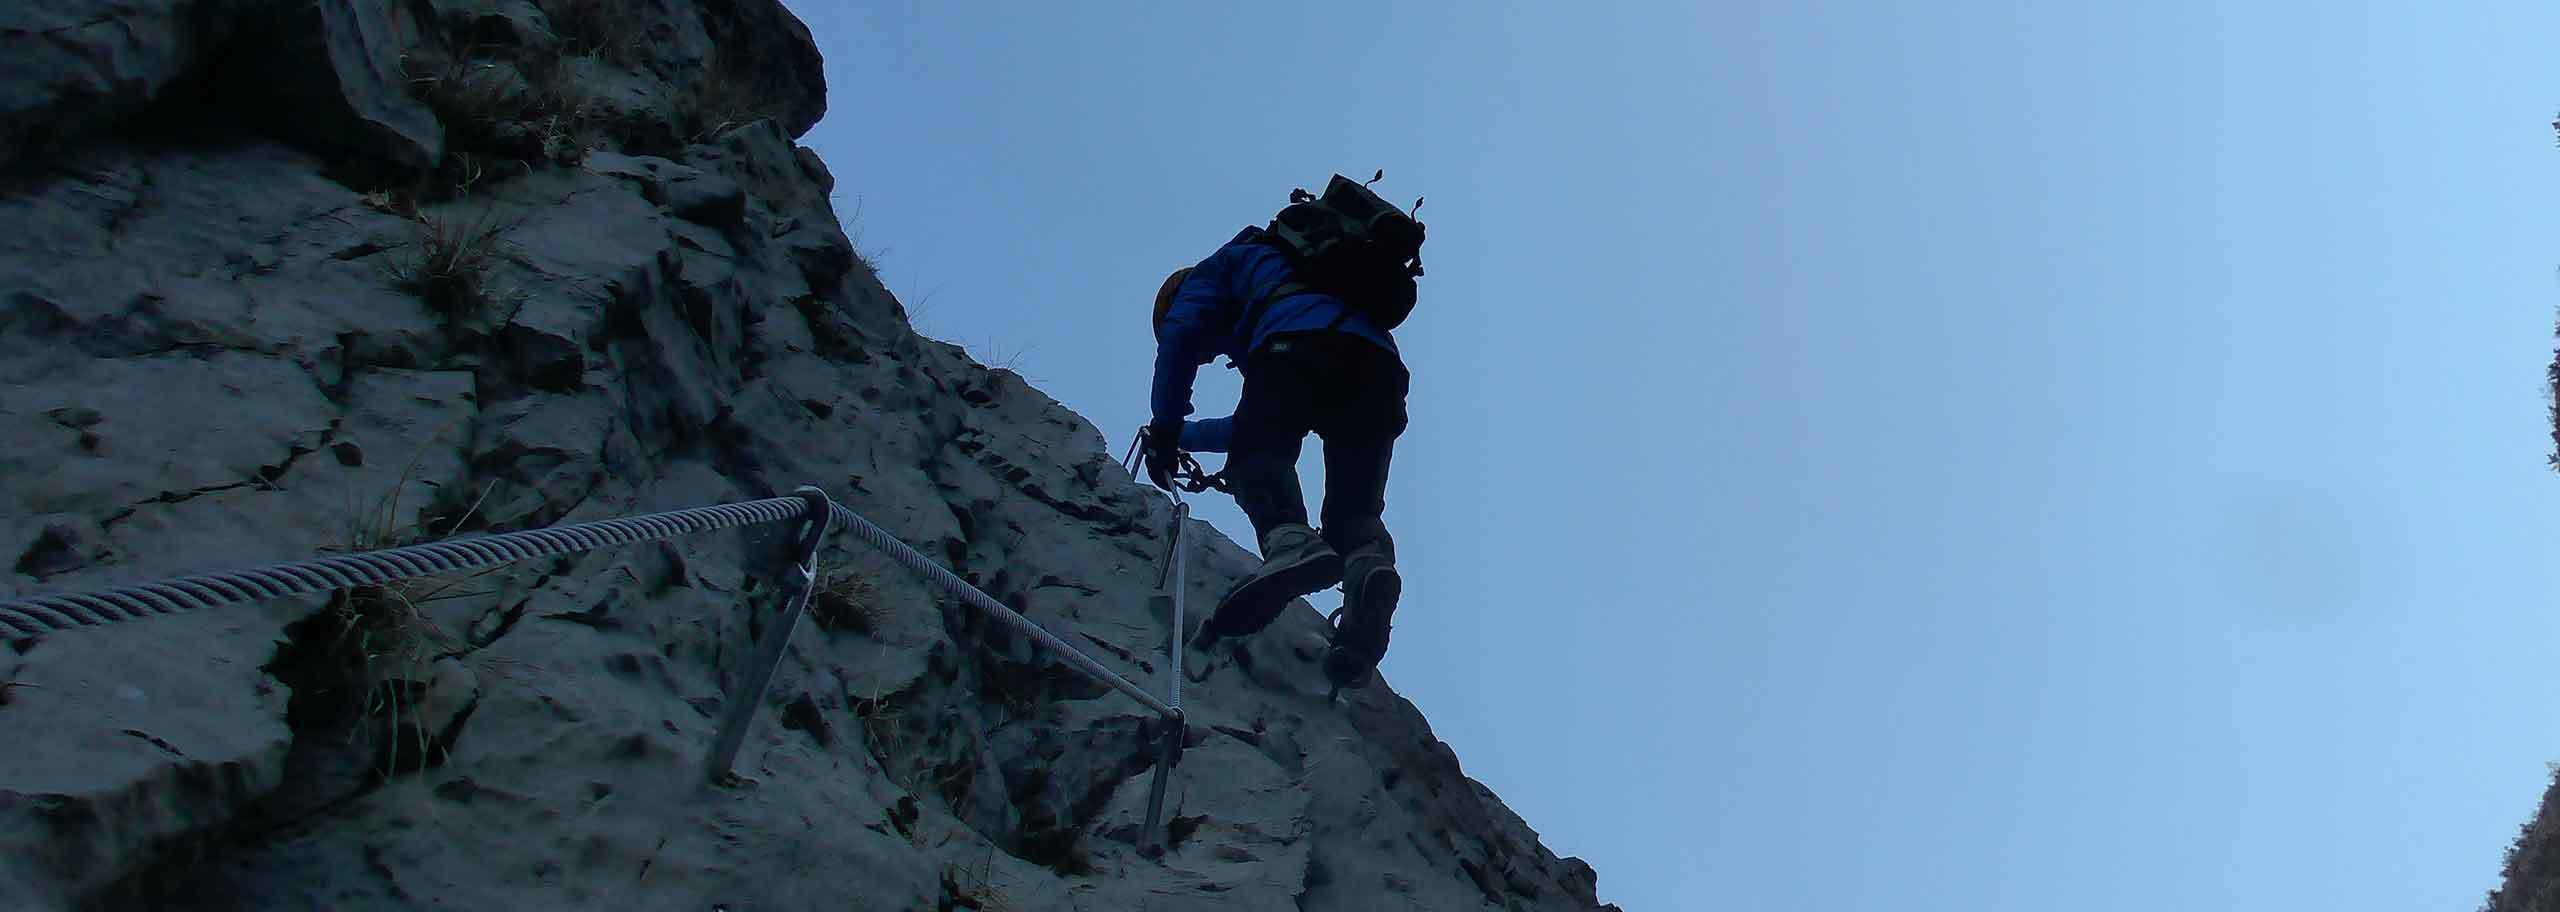 Via Ferrata in La Thuile with Mountain Guide